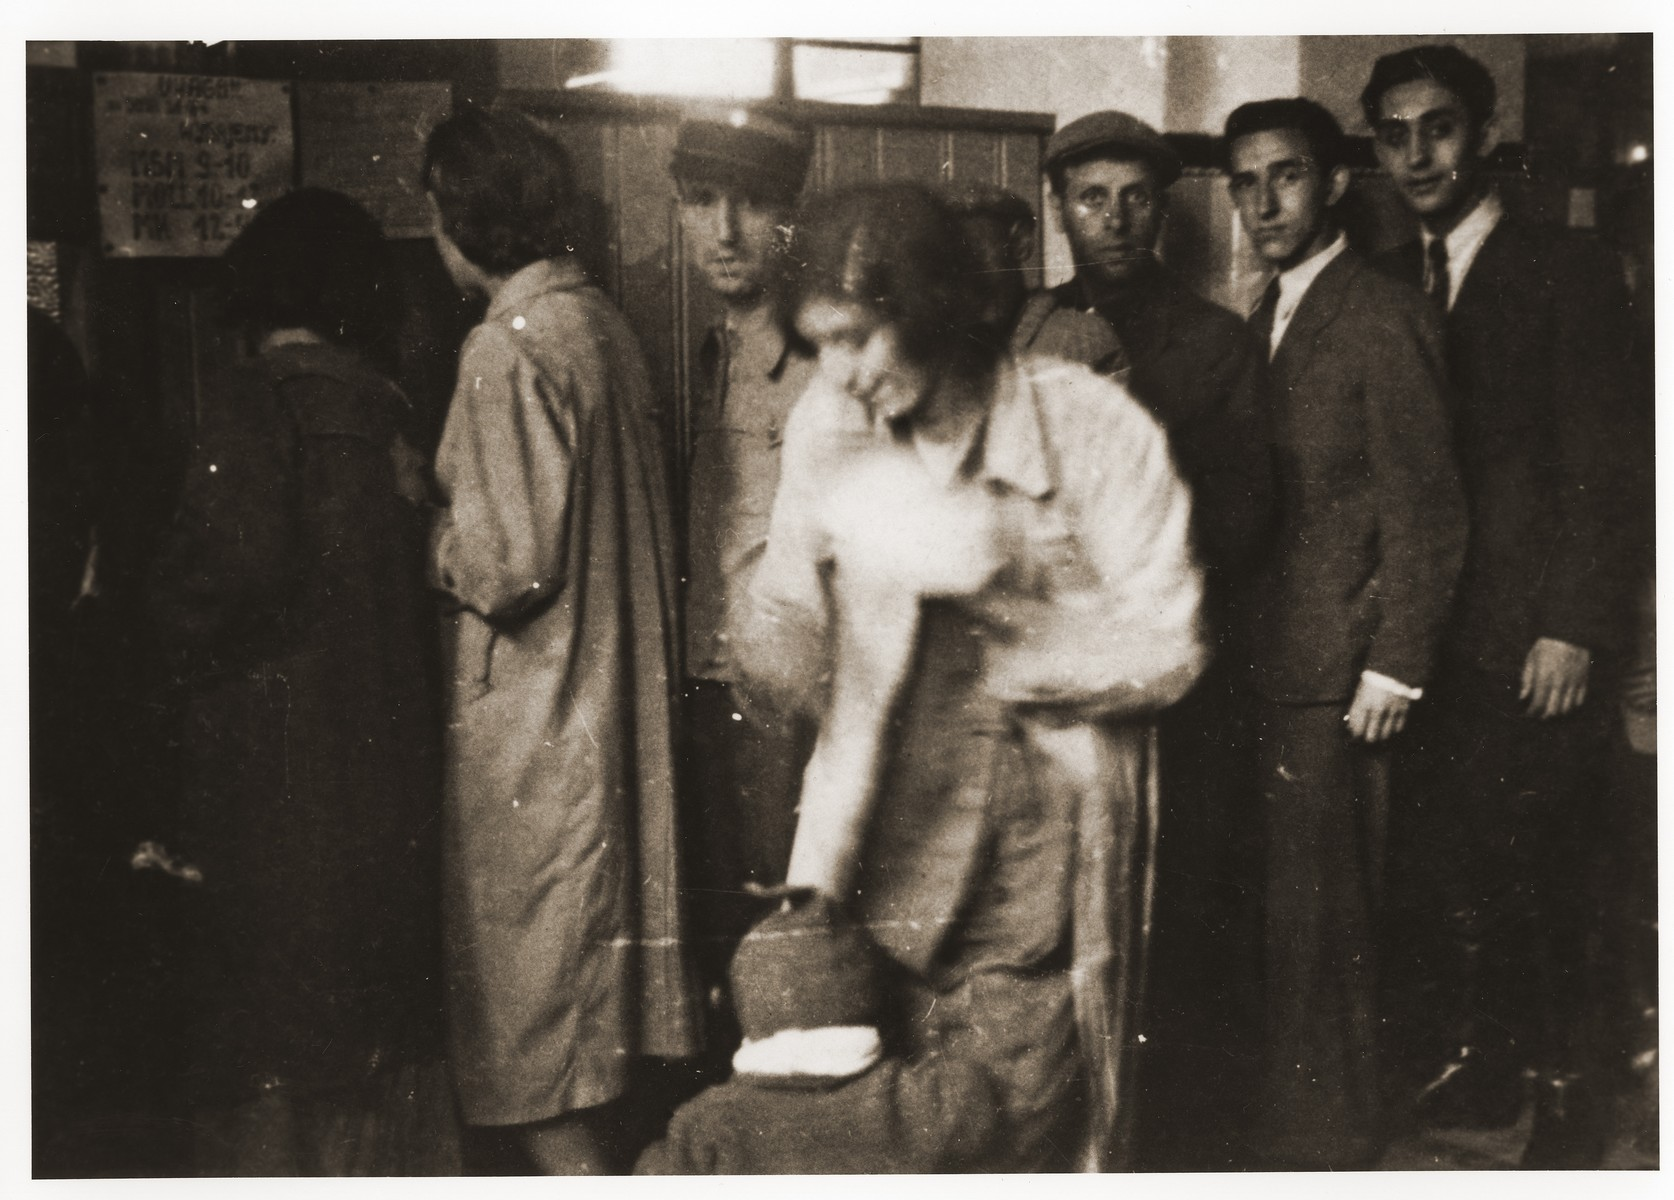 Lodz residents line up at an unidentified office in the ghetto.